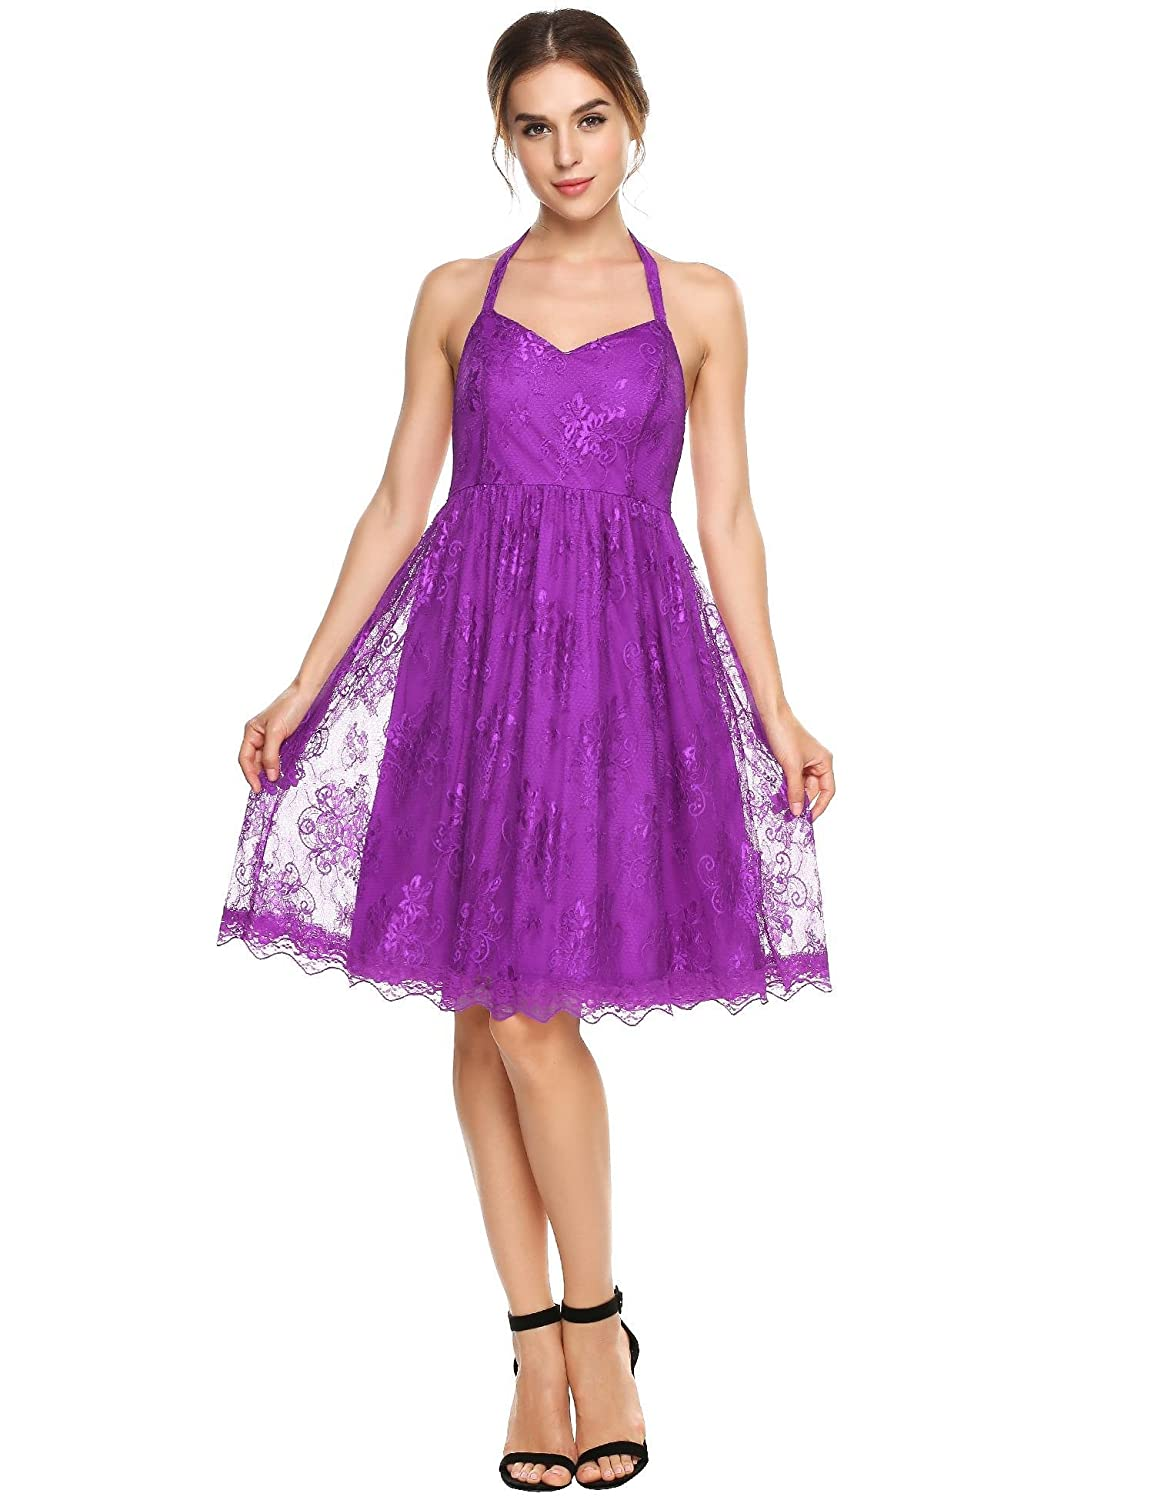 bdd52d08dfc Grown And Sexy Party Dresses – DACC